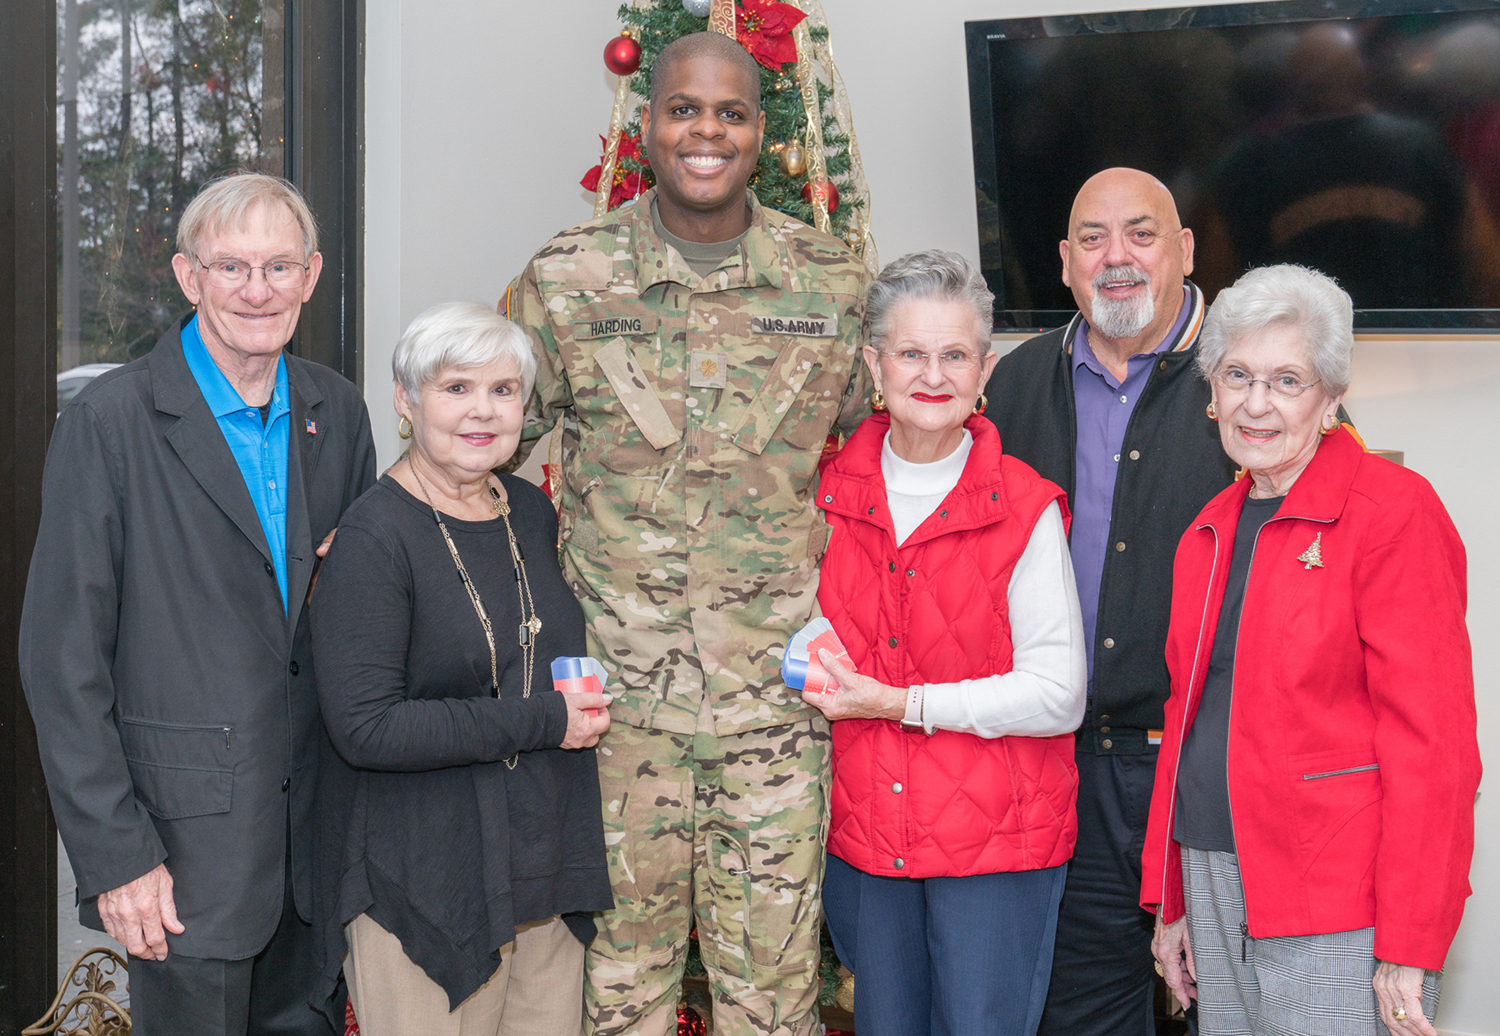 RE/MAX The Woodlands & Spring Agents Provide Holiday Support for Soldiers in Conroe — Members of First Battalion, 158th Aviation Regiment recipients of agents' generosity